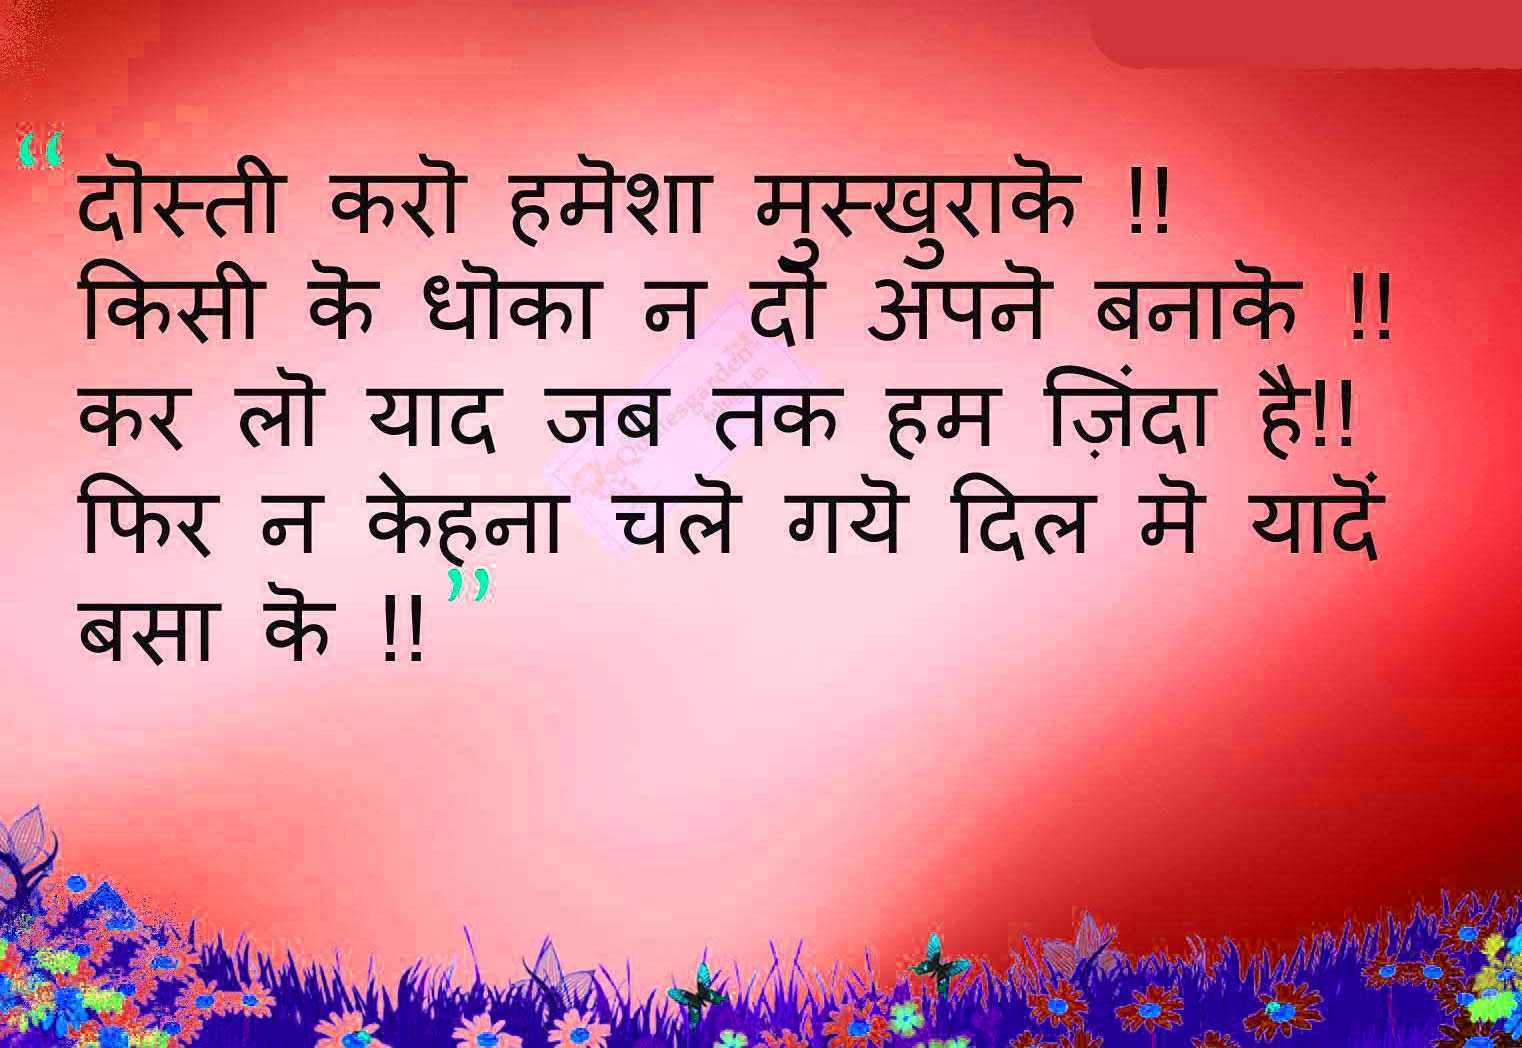 HINDI SAD LOVE ROMANTIC LIFE BEST HINDI SHAYARI IMAGES PHOTO WALLPAPER FOR FACEBOOK